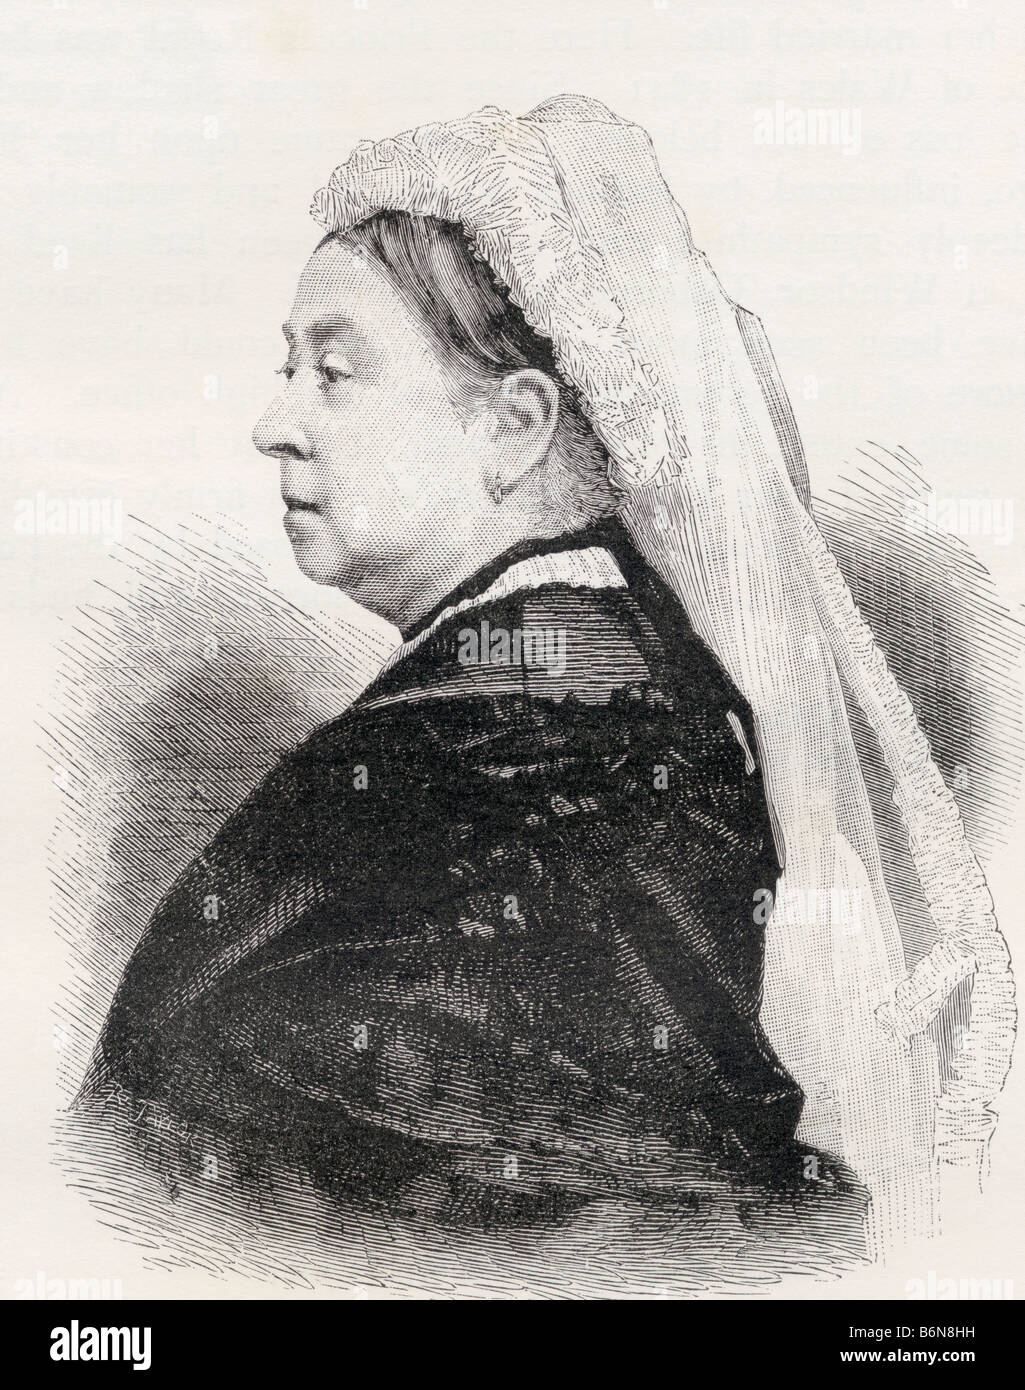 Queen Victoria 1819 - 1901 Princess Alexandrina Victoria of Saxe Coburg Queen of Great Britain and Ireland and Empress - Stock Image